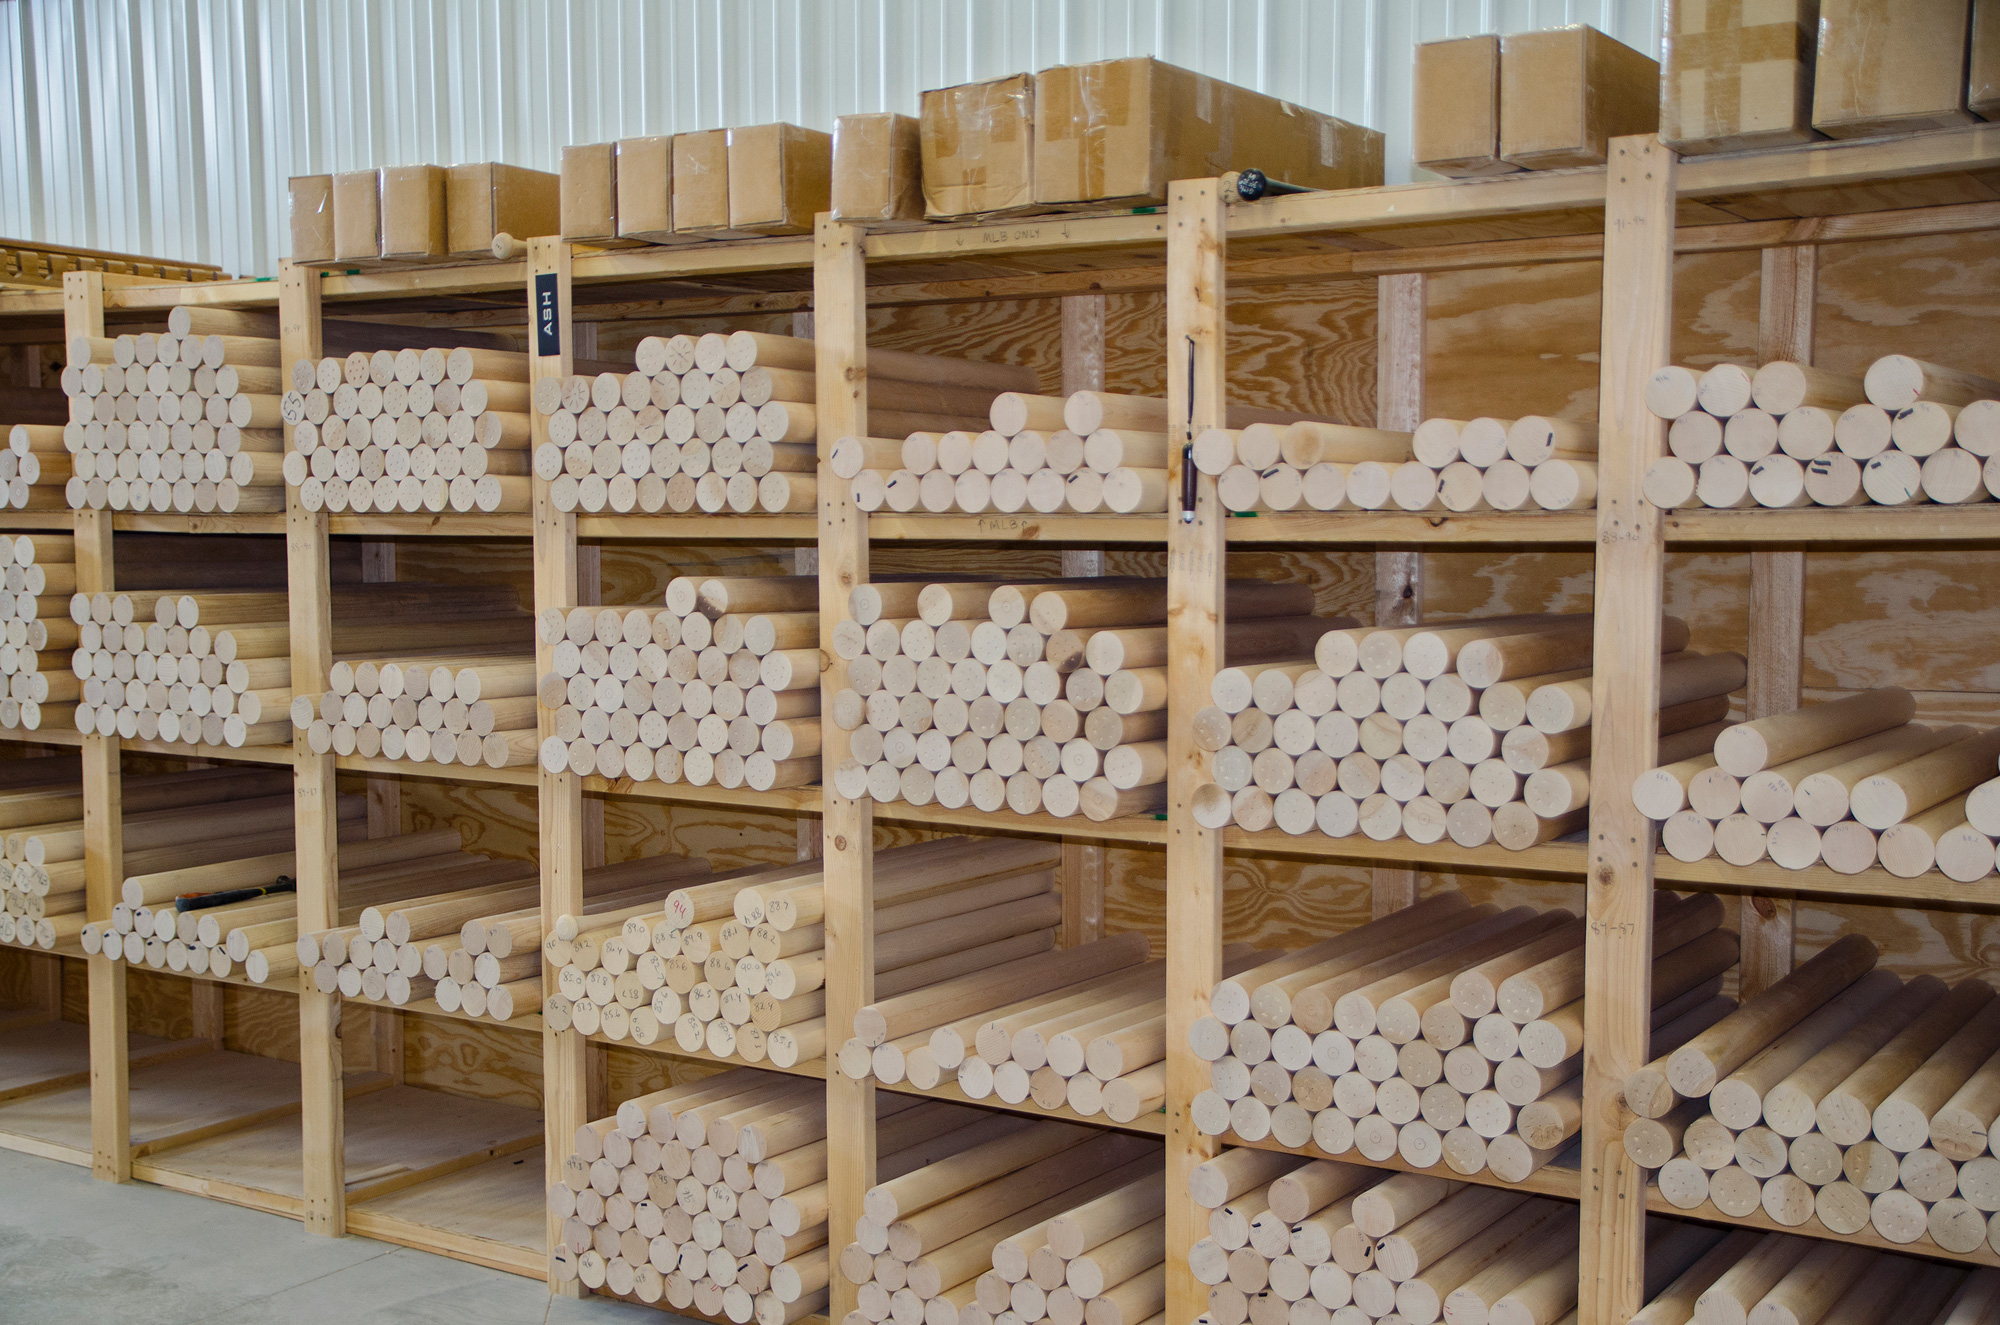 Rows Of High Quality Stock Will Soon Be Turned To Bats